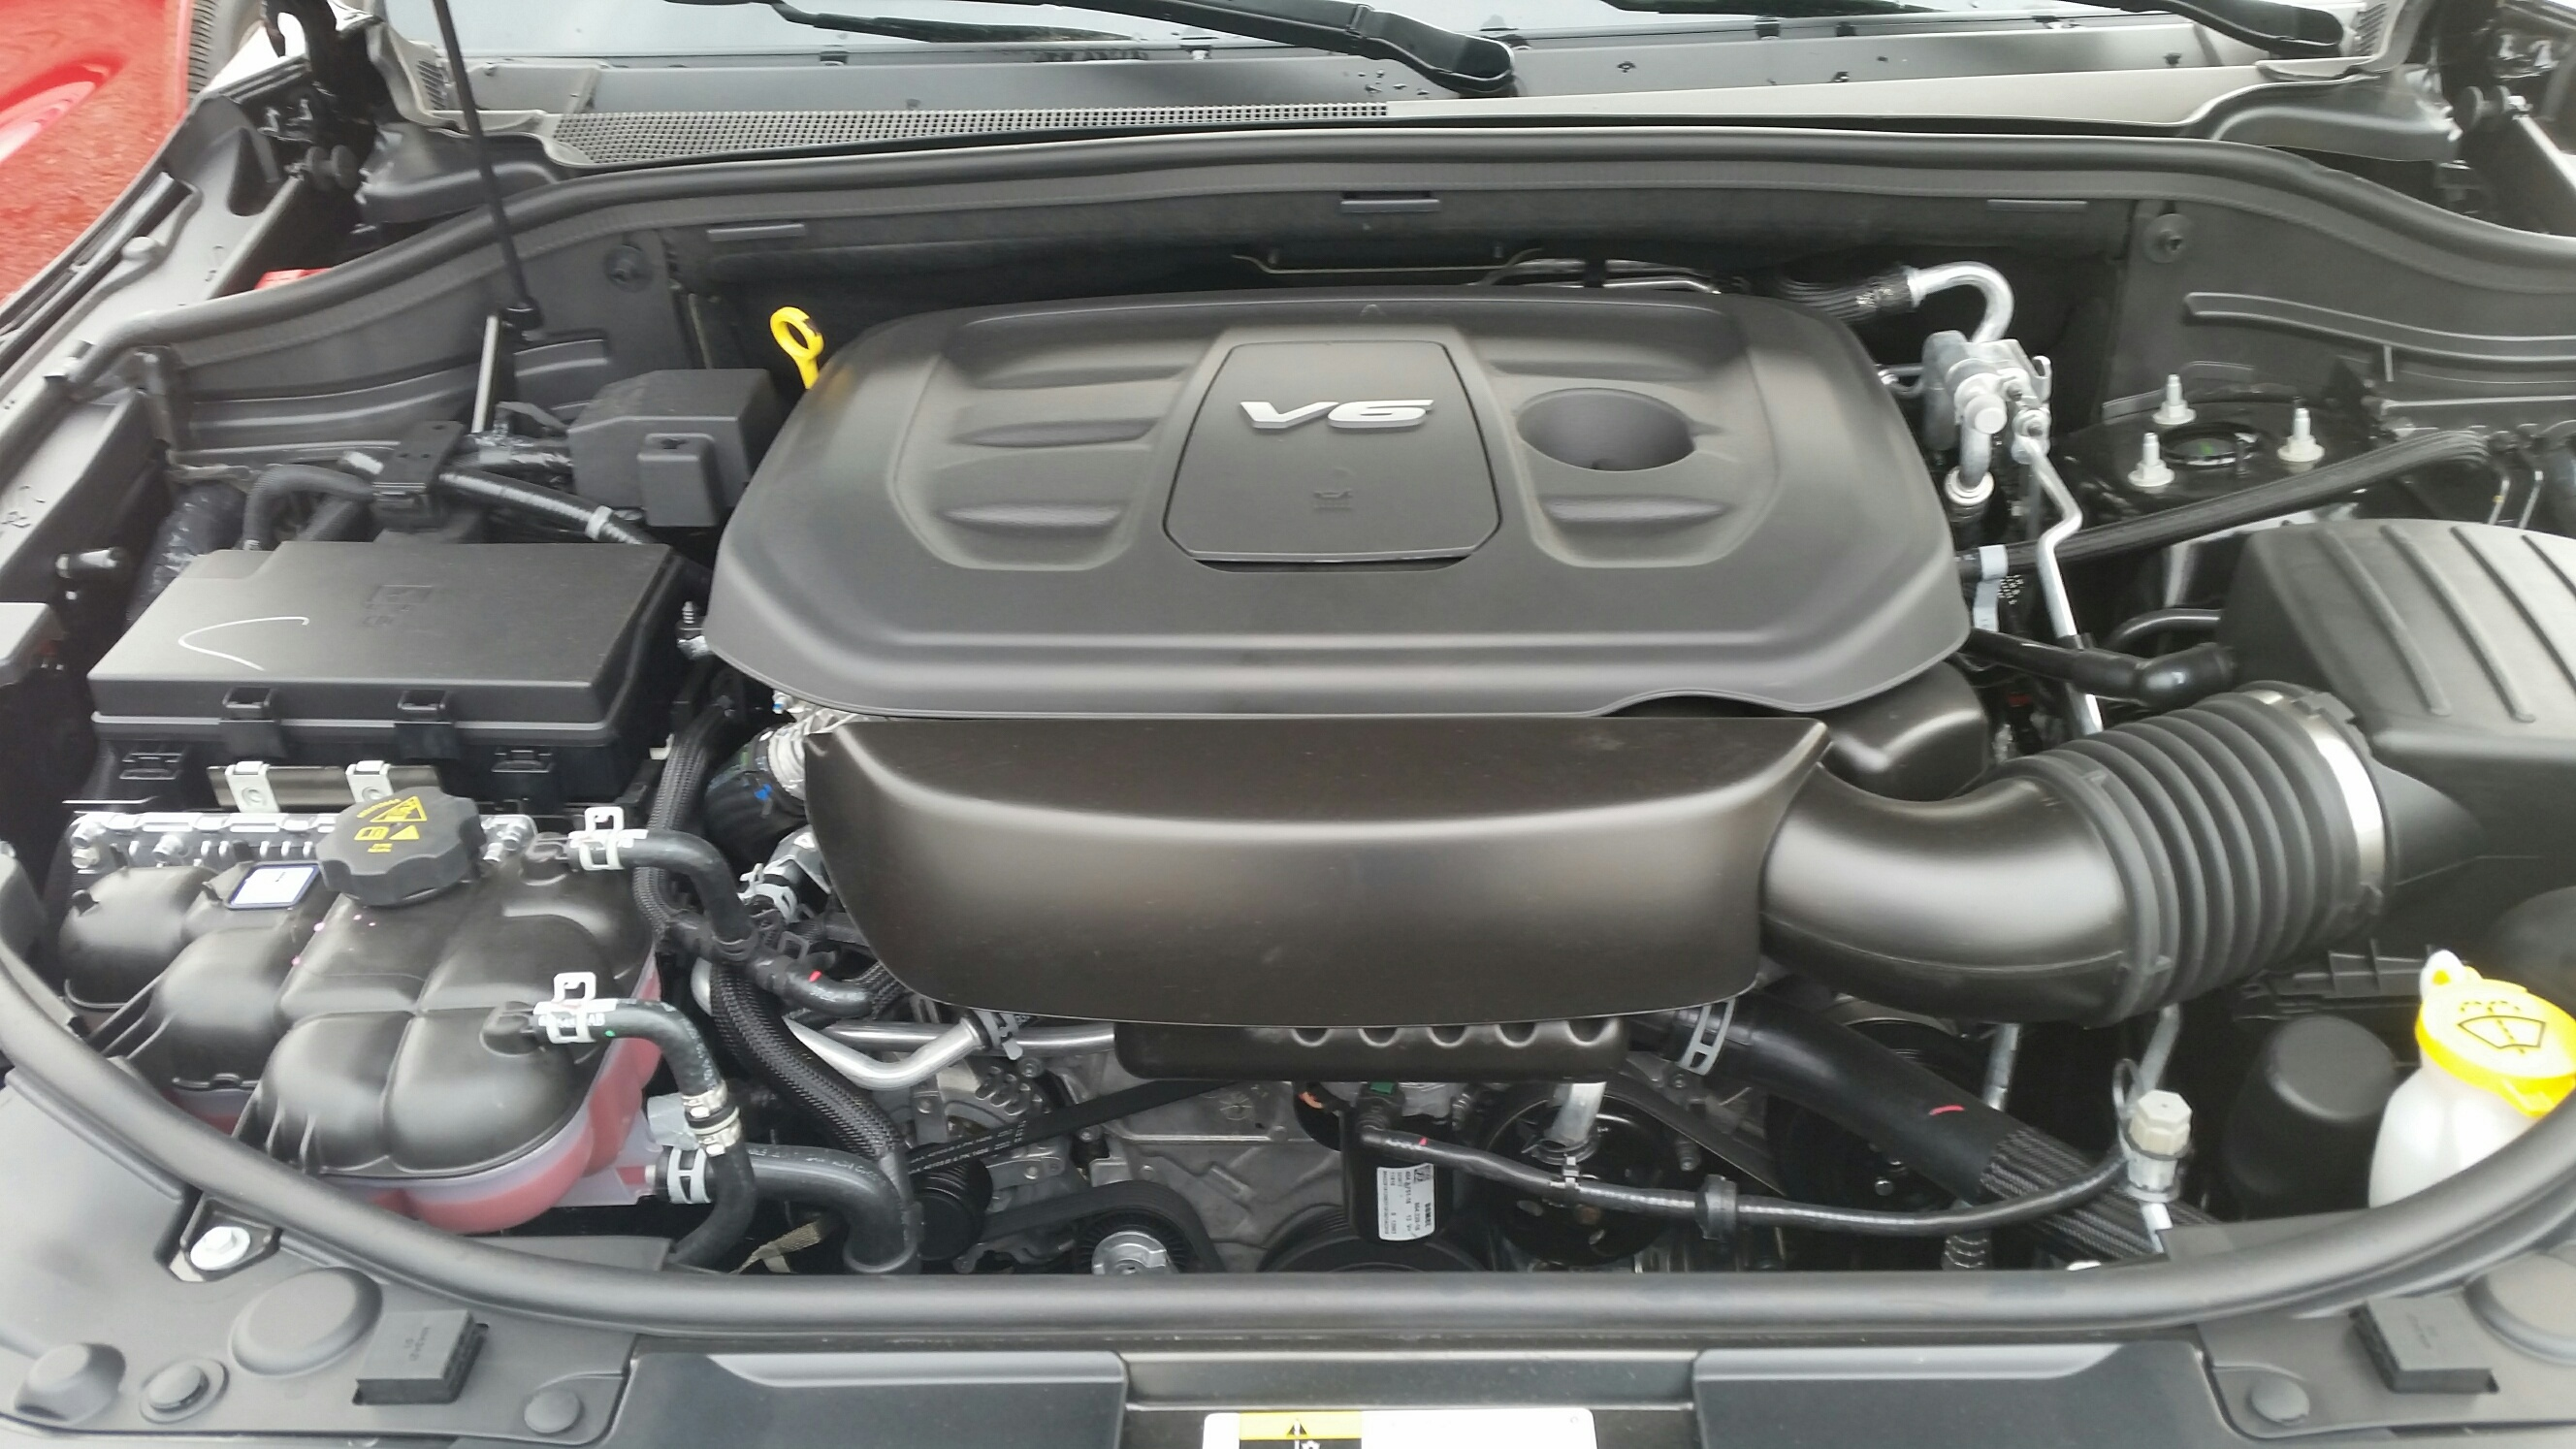 Durango v6 engine